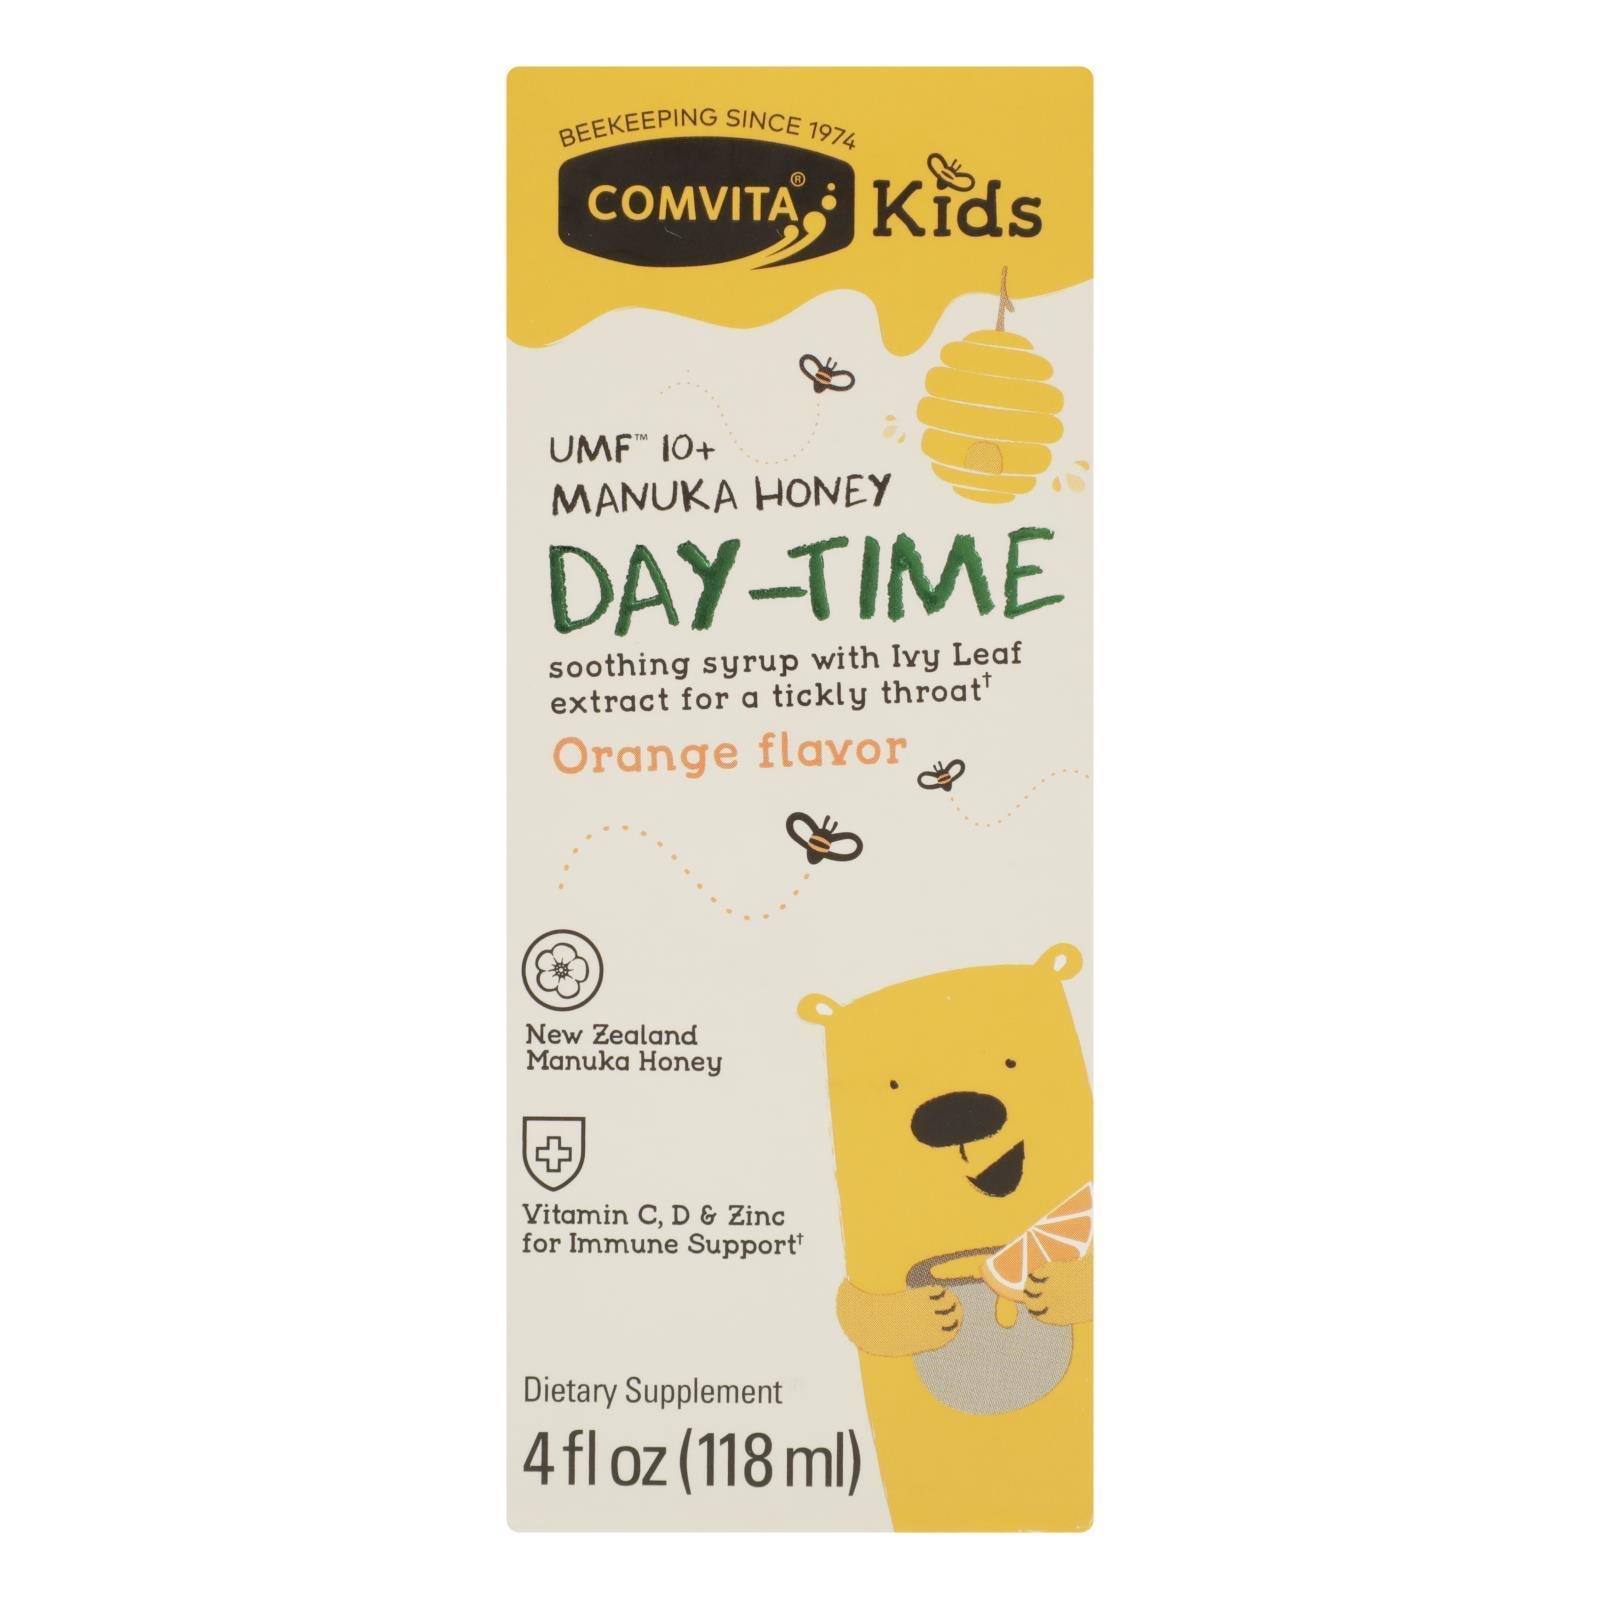 Comvita Kids Soothing Syrup, Day-Time, Orange Flavor - 4 fl oz